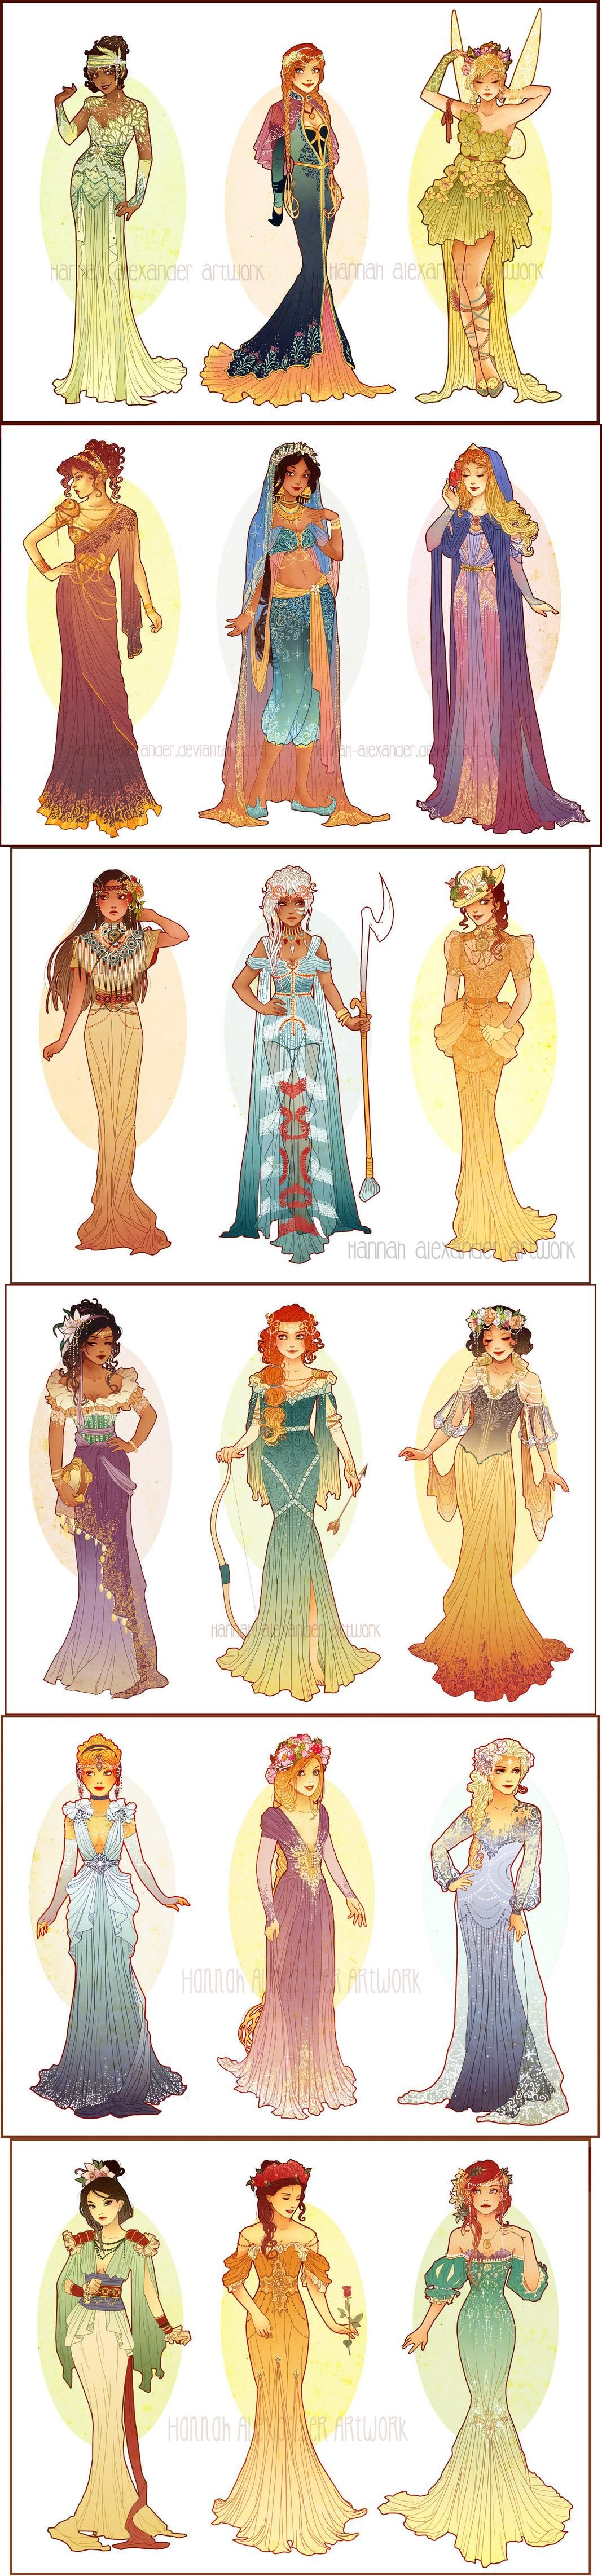 Art Nouveau Costume Art Nouveau Costume Designs By Hannah Alexander Disney